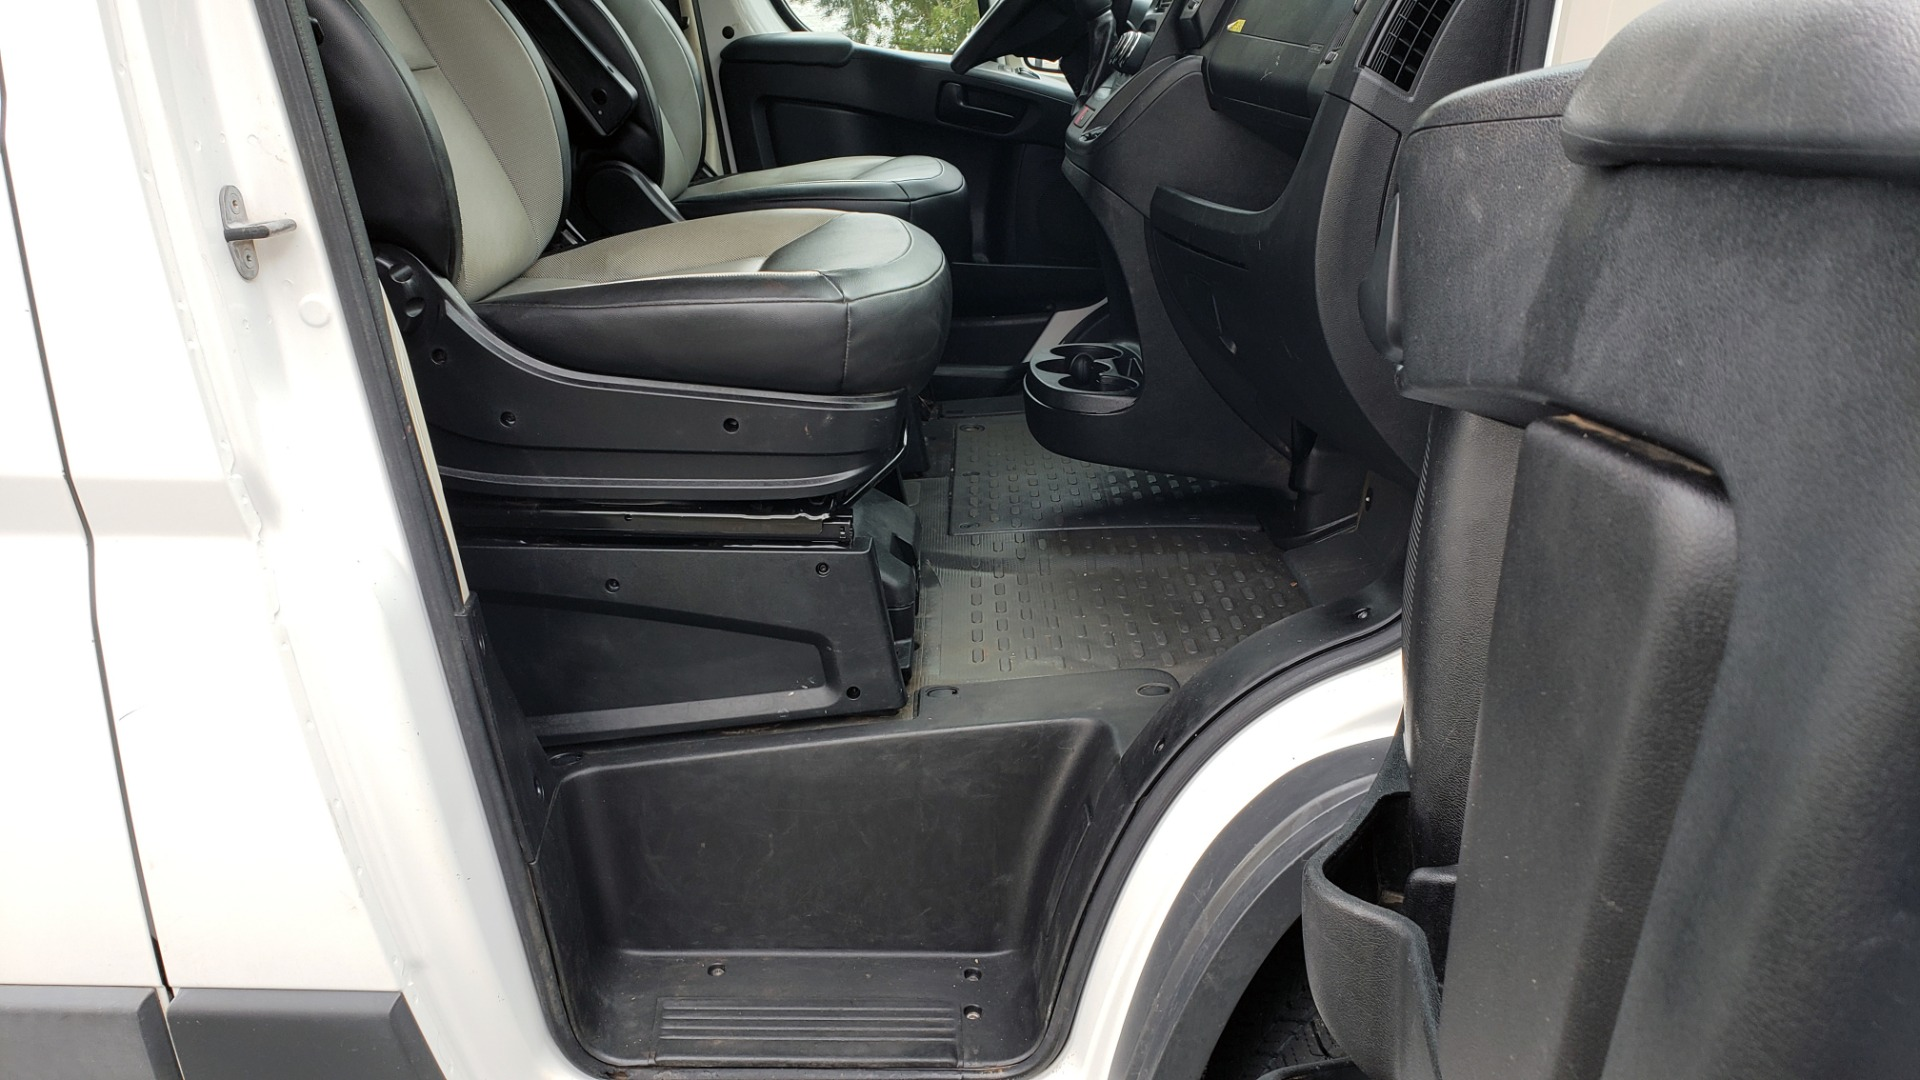 Used 2015 Ram PROMASTER CARGO VAN 136-INCH WB / LOW ROOF / LADDER RACK / INSIDE RACKS for sale $16,995 at Formula Imports in Charlotte NC 28227 51